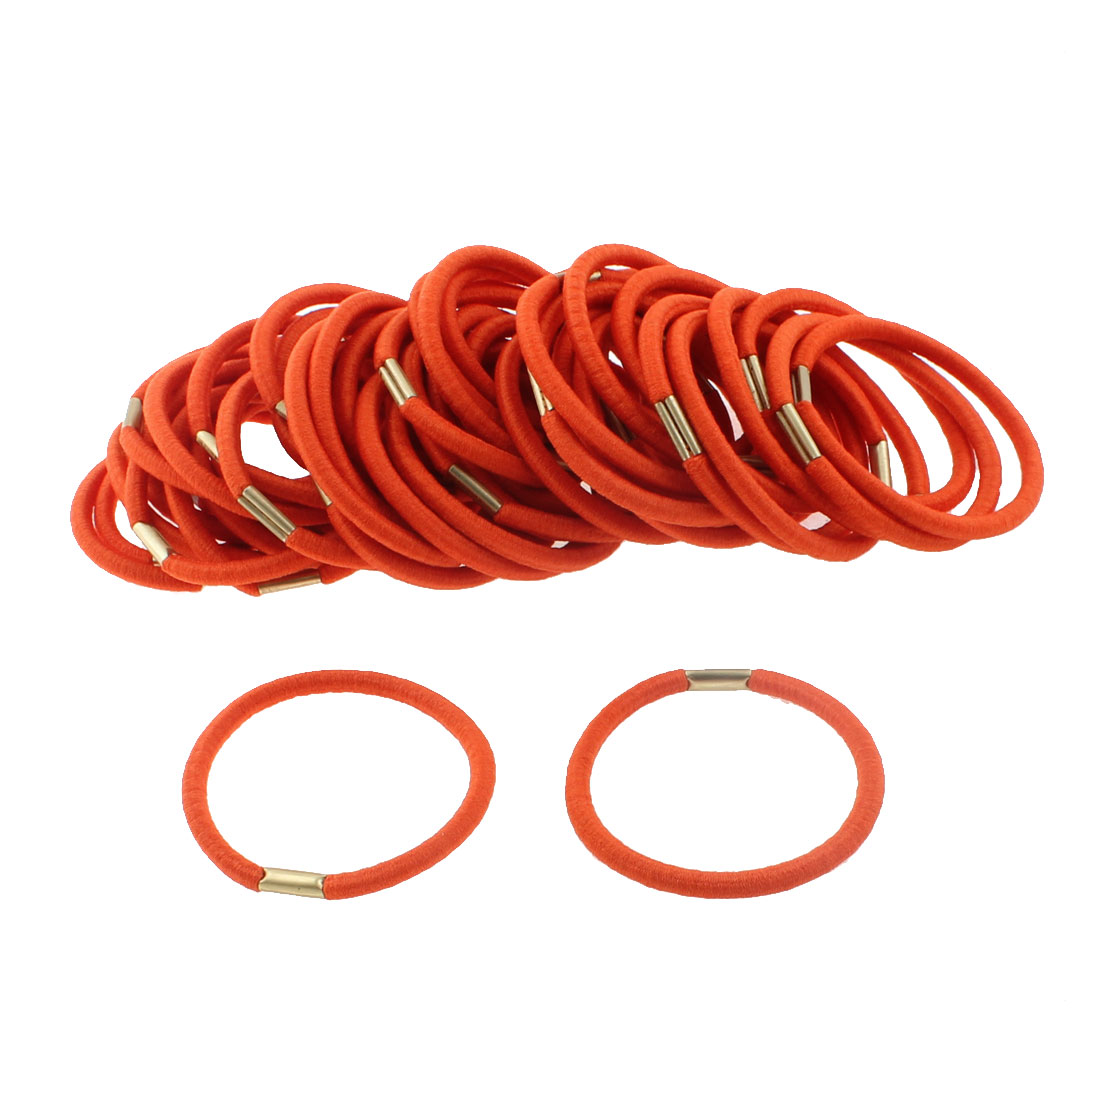 Women Elastic Hair Tie Rope Ring Band Hairband Ponytail Holder Orange 50pcs